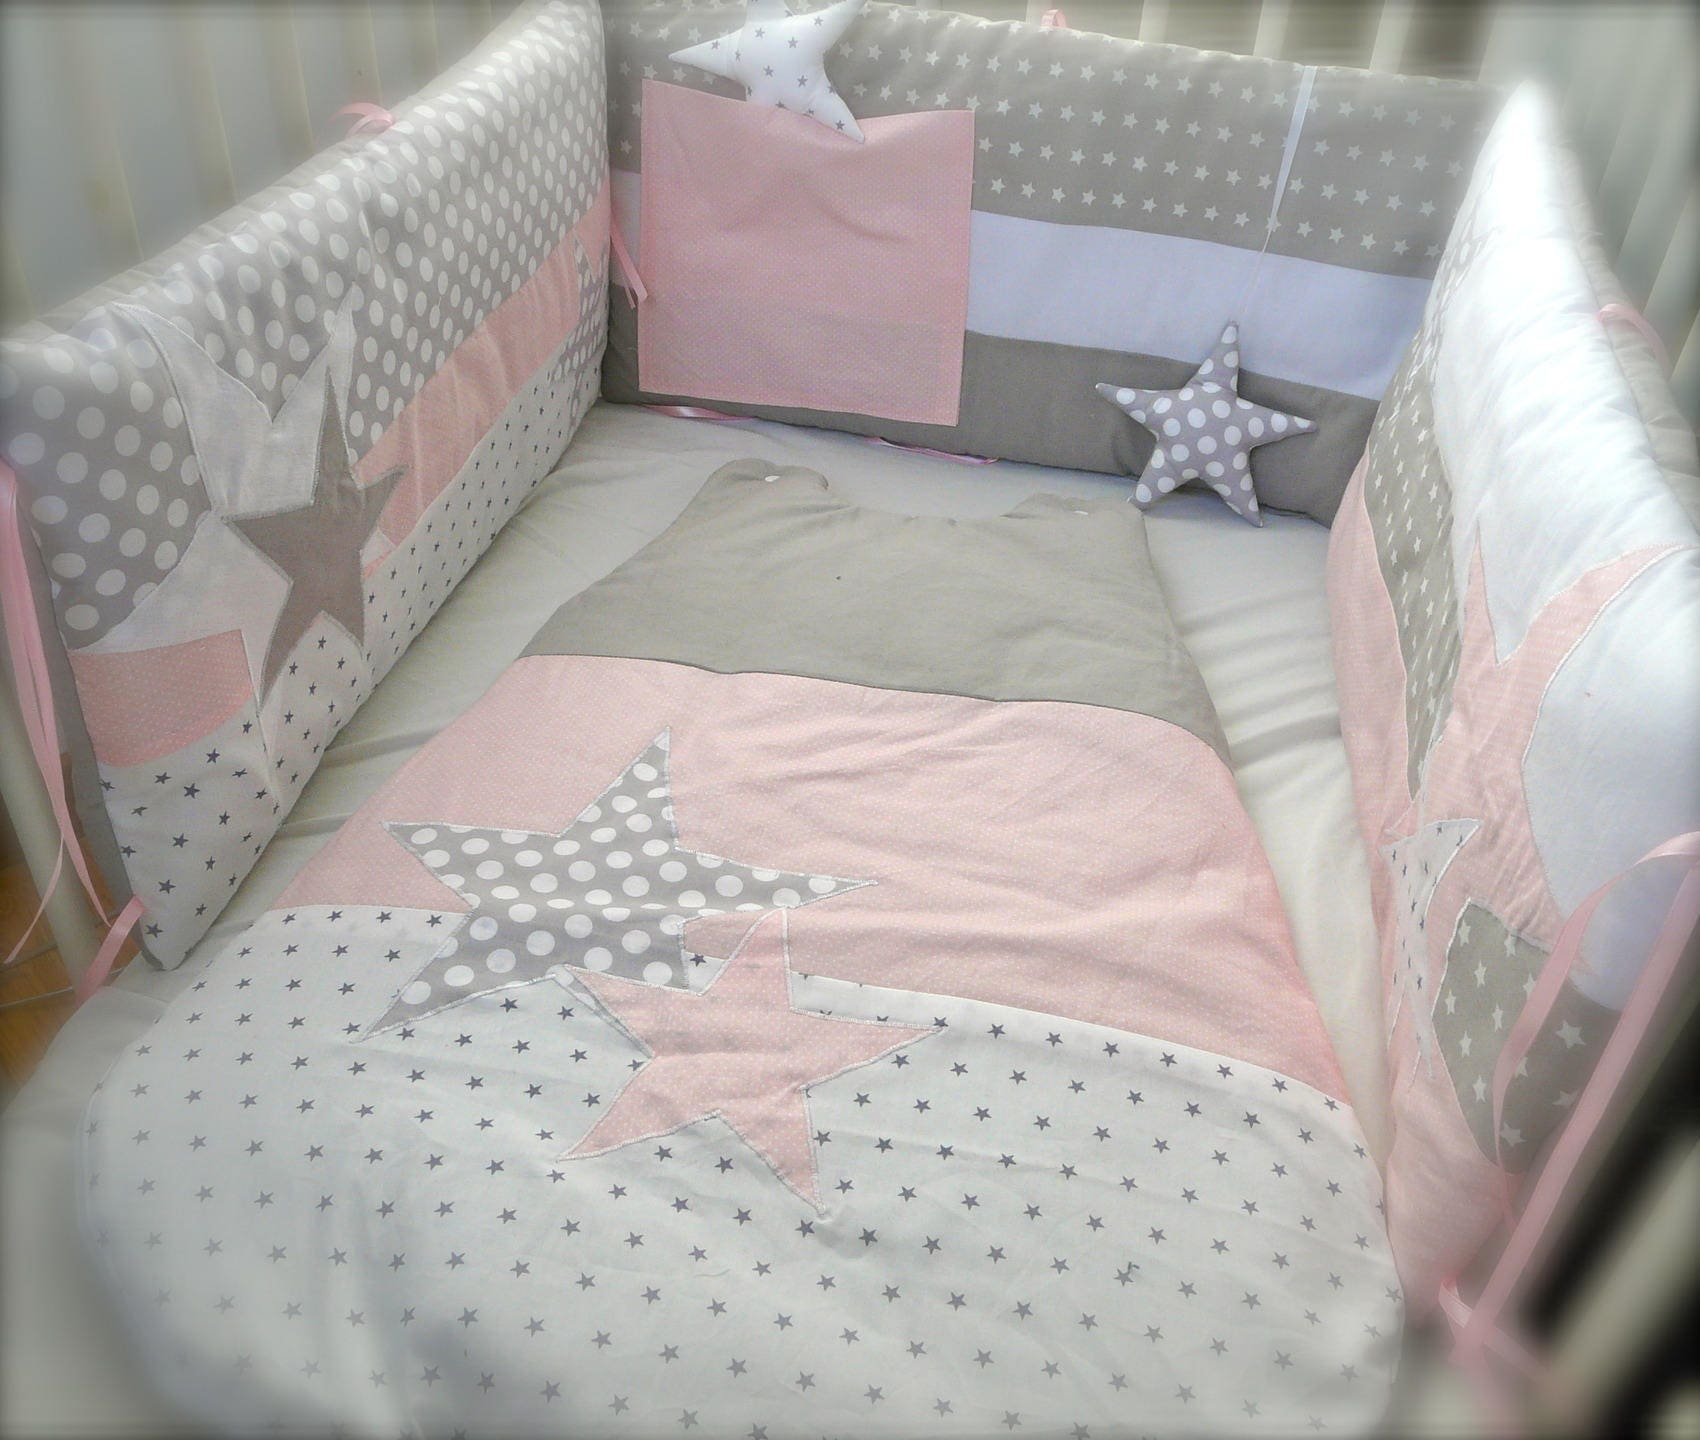 tour de lit etoiles rose et gris perles. Black Bedroom Furniture Sets. Home Design Ideas